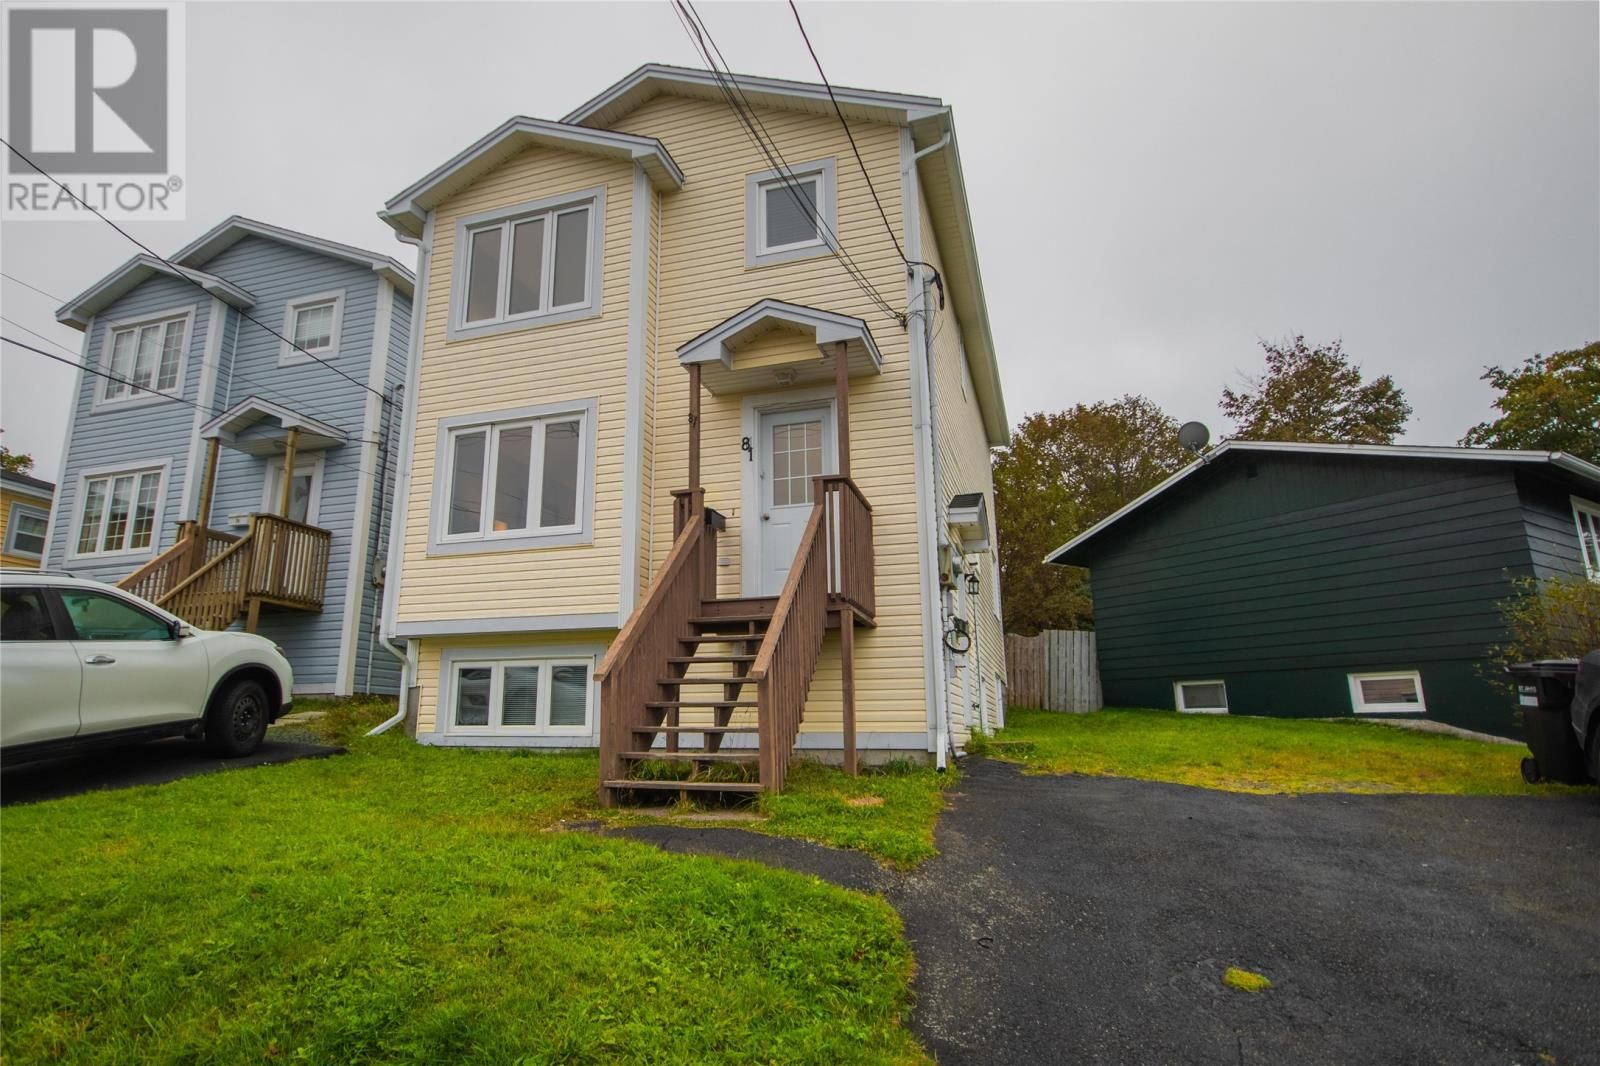 Main Photo: 81 Newtown Road in ST. JOHN'S: House for sale : MLS®# 1238081